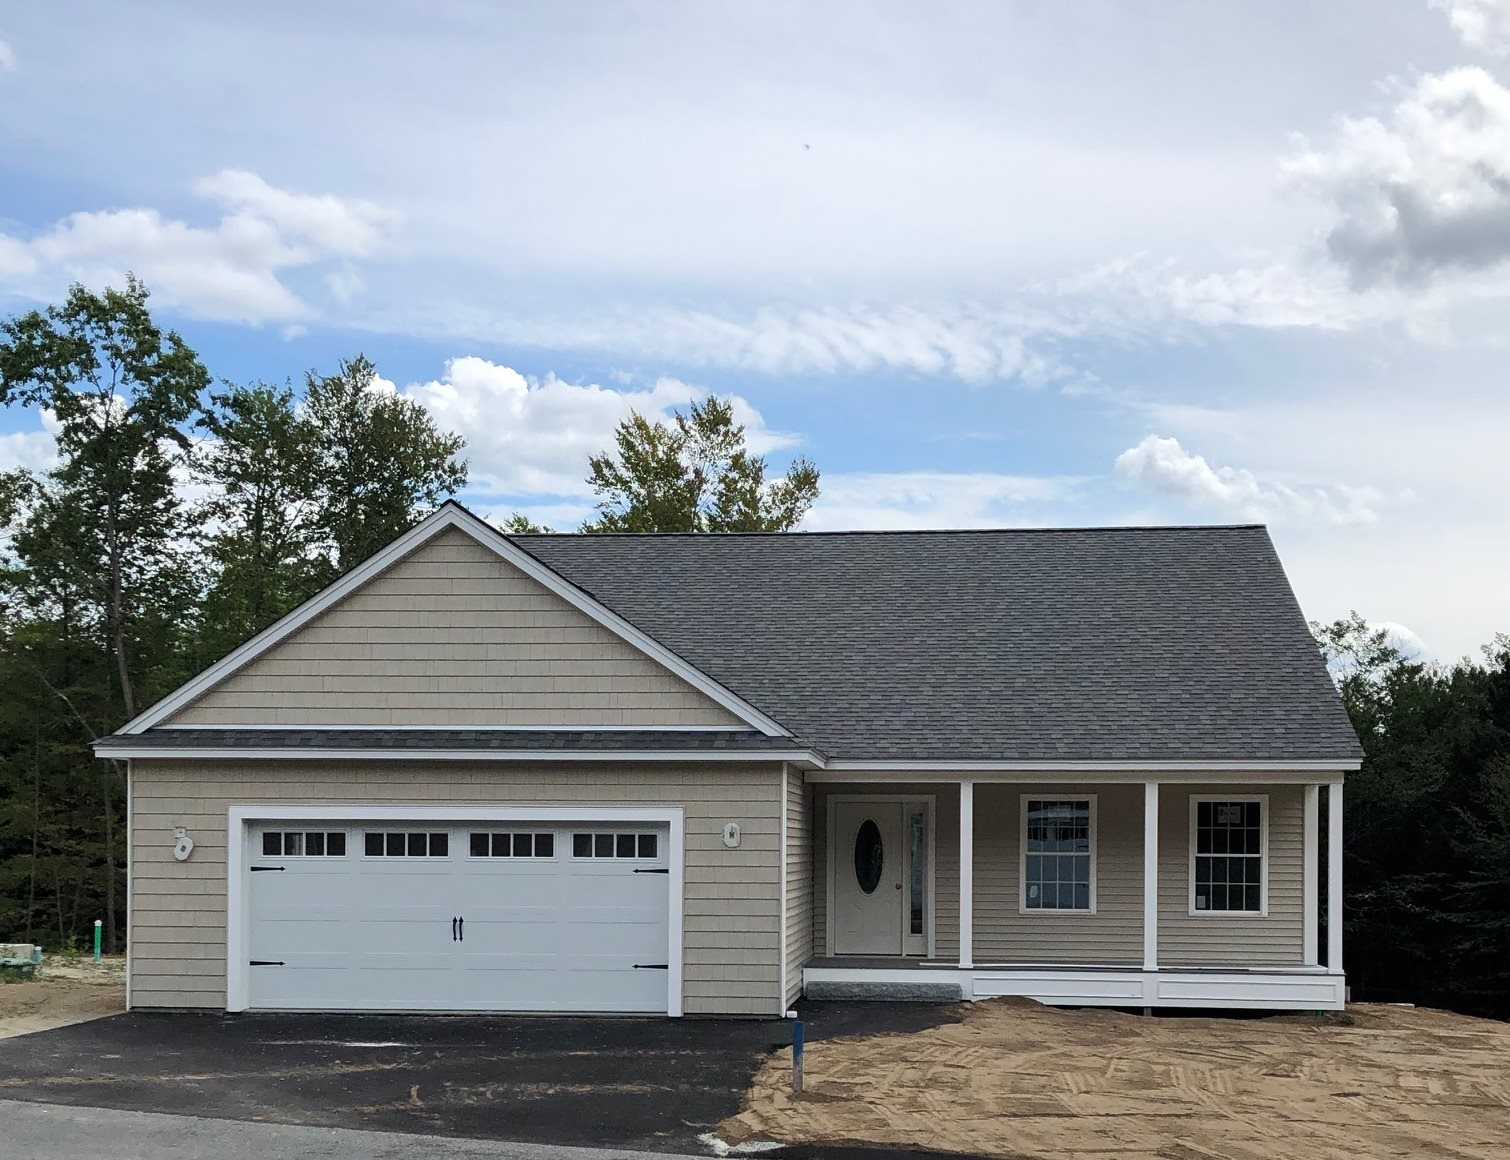 77 Pineview Drive, Candia, NH 03034